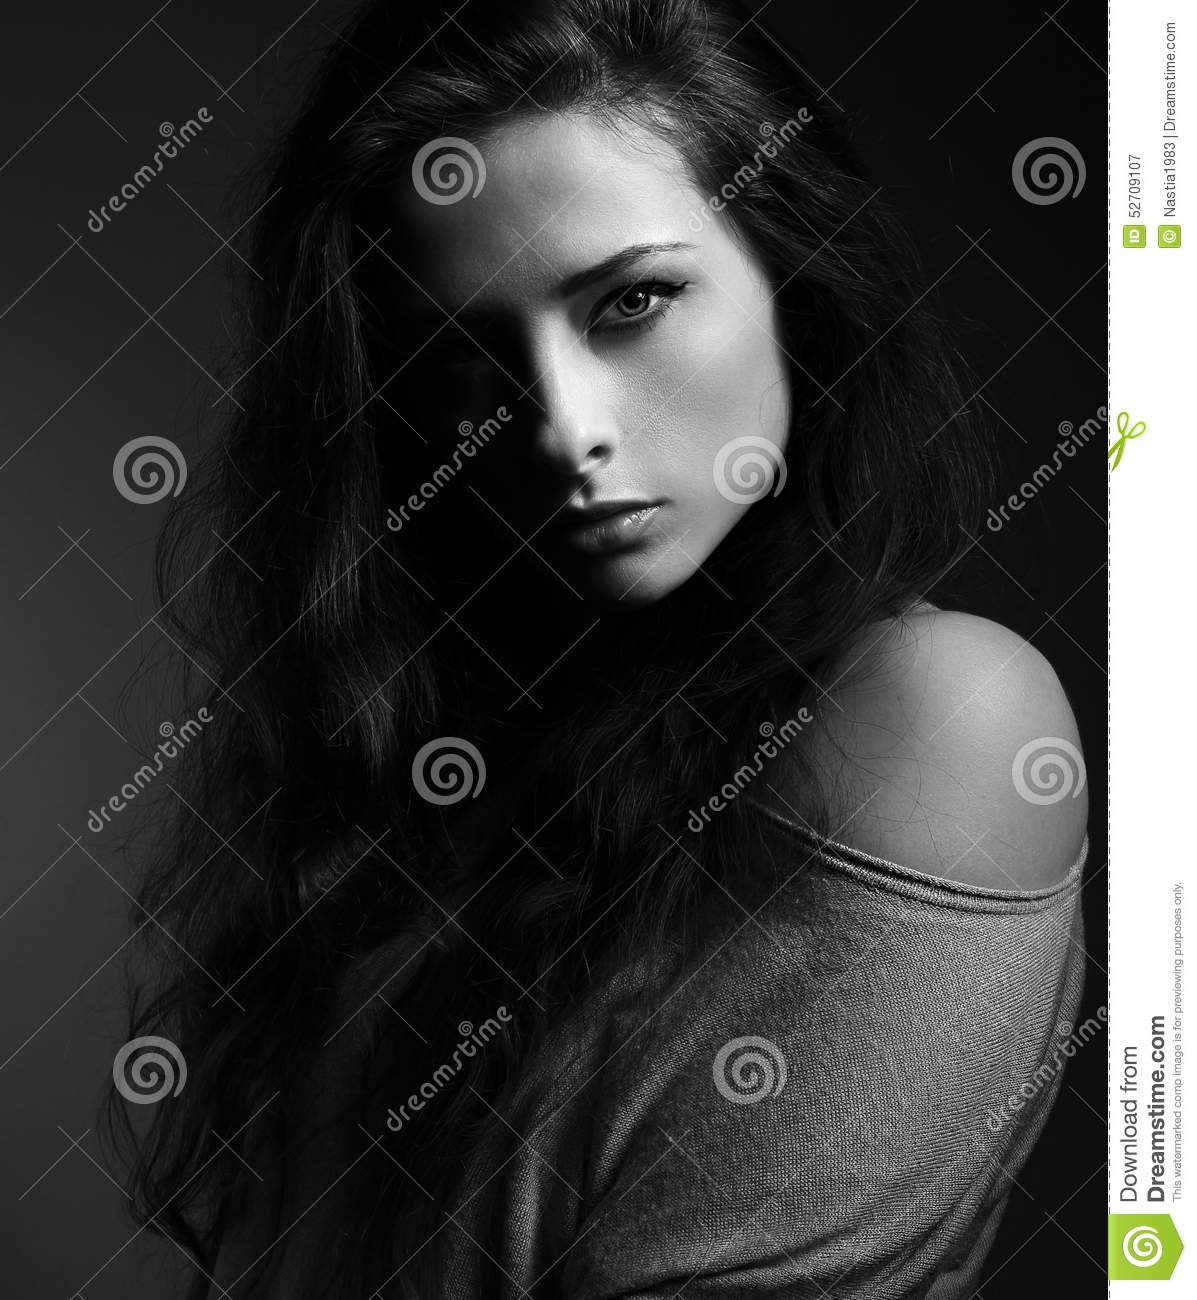 Beautiful Woman With Long Hair Shadow On Half Face Black